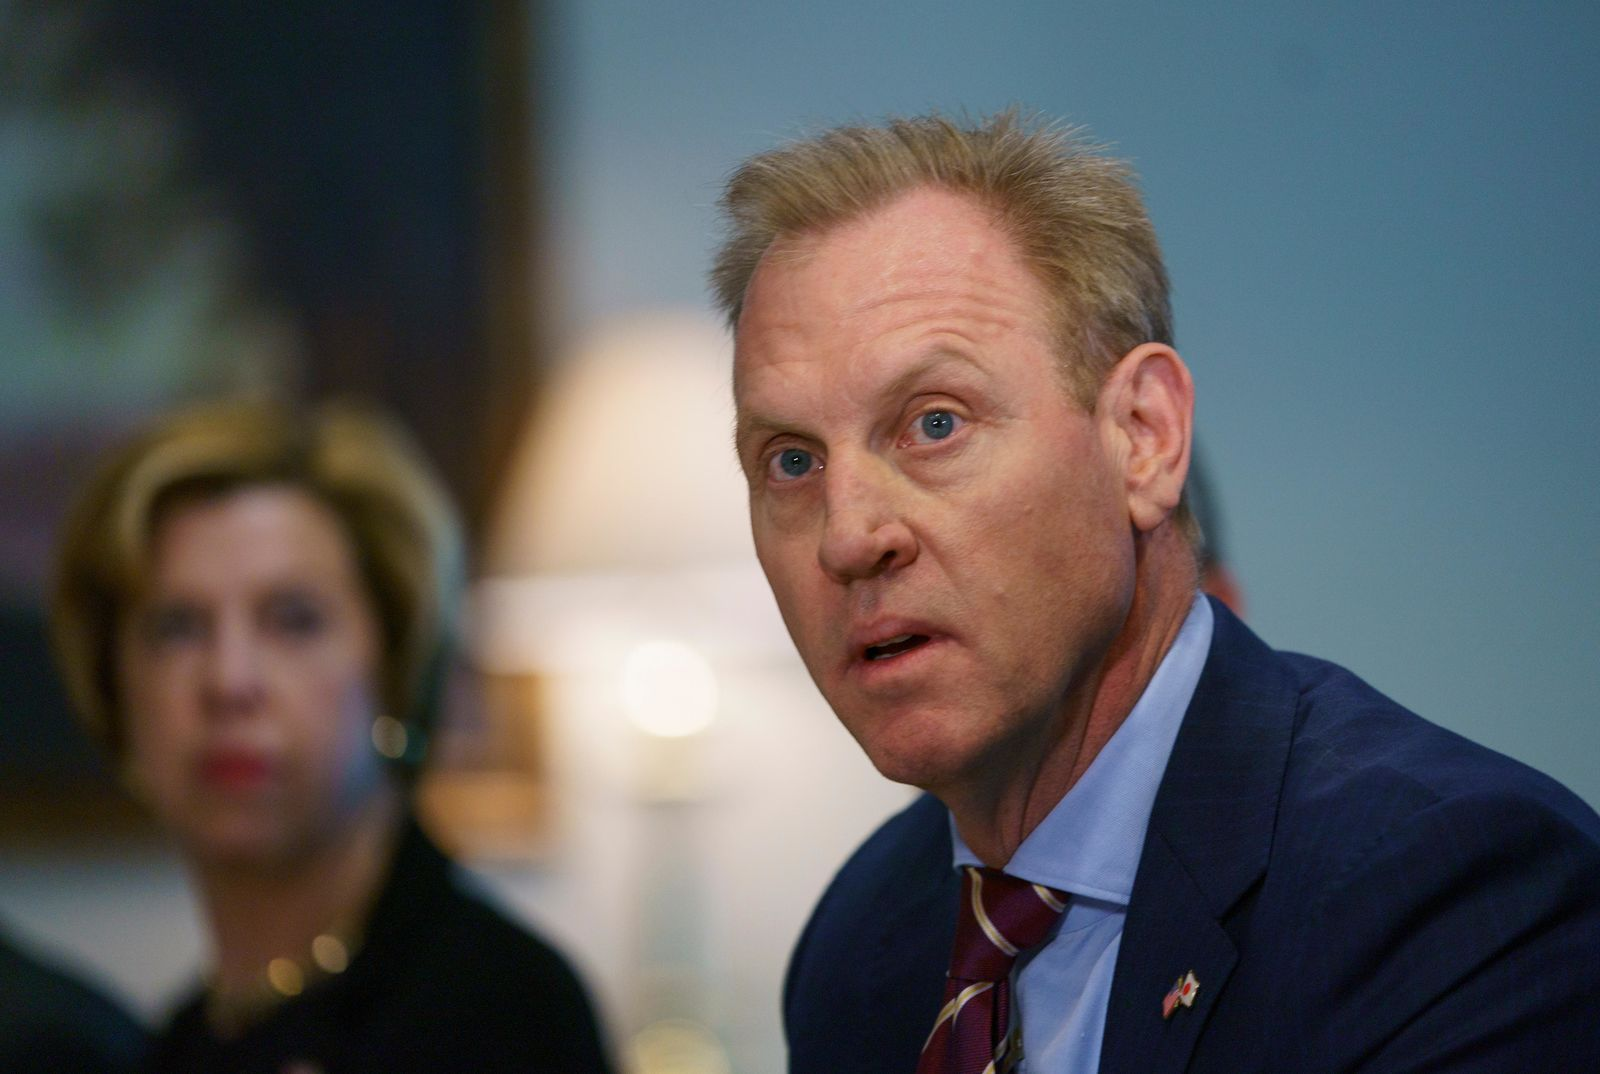 Acting Secretary of Defense Patrick Shanahan speaks at the beginning of a meeting with Japan's Defense Minister Takeshi Iwaya at the Pentagon, Wednesday, Jan. 16, 2019, about U.S. troops killed in an explosion while conducting a routine patrol in Syria. (AP Photo/Carolyn Kaster)